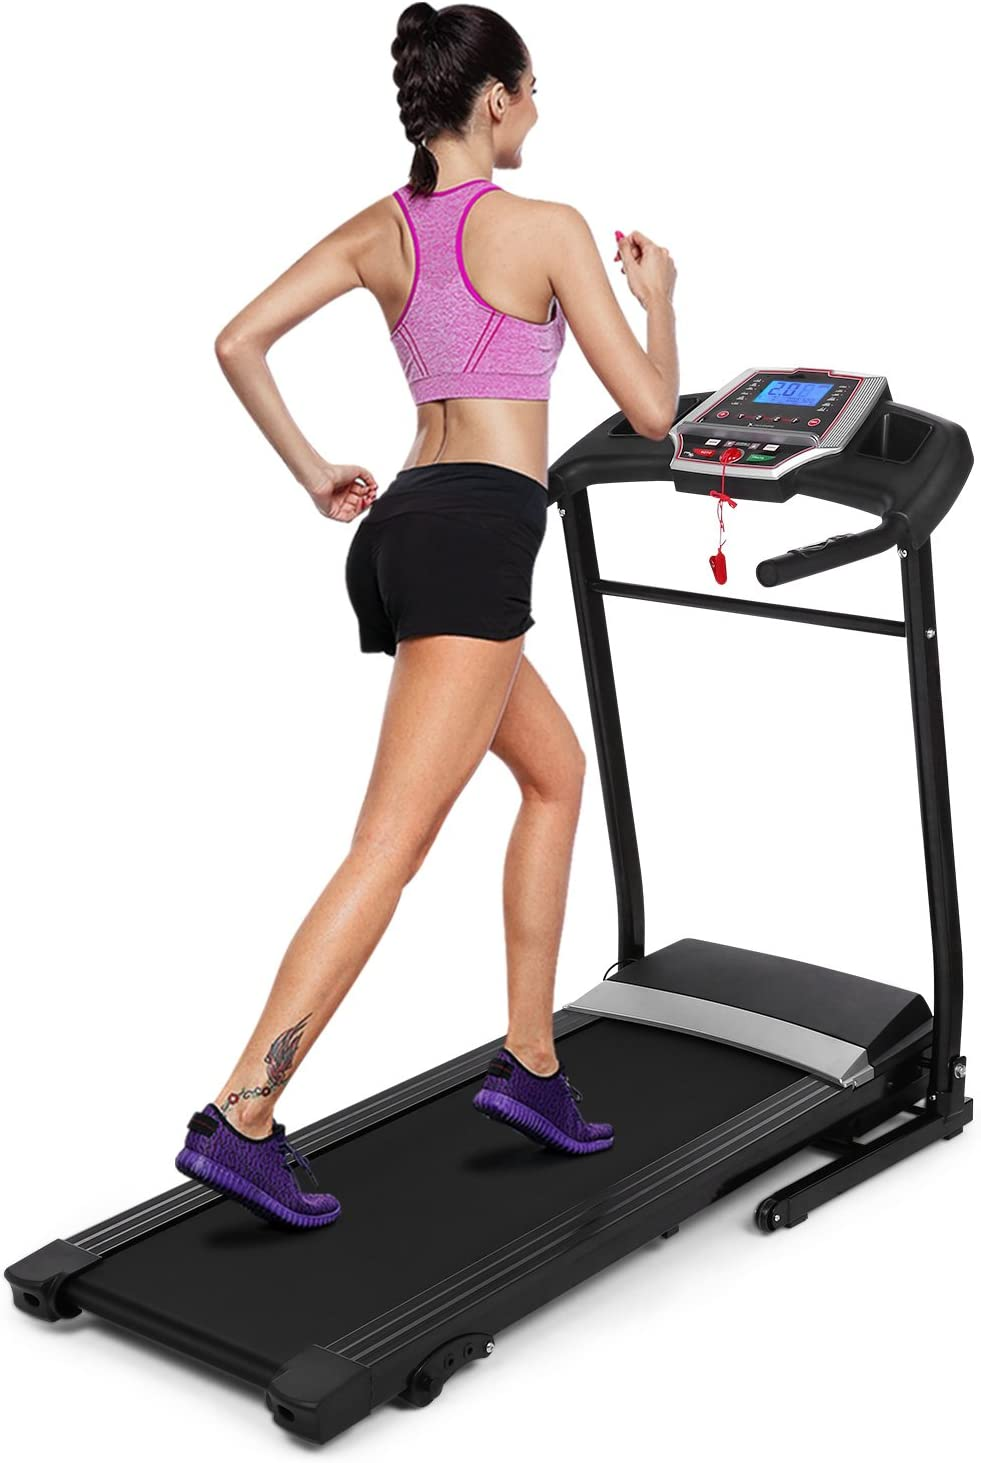 Yiilove Folding Treadmill